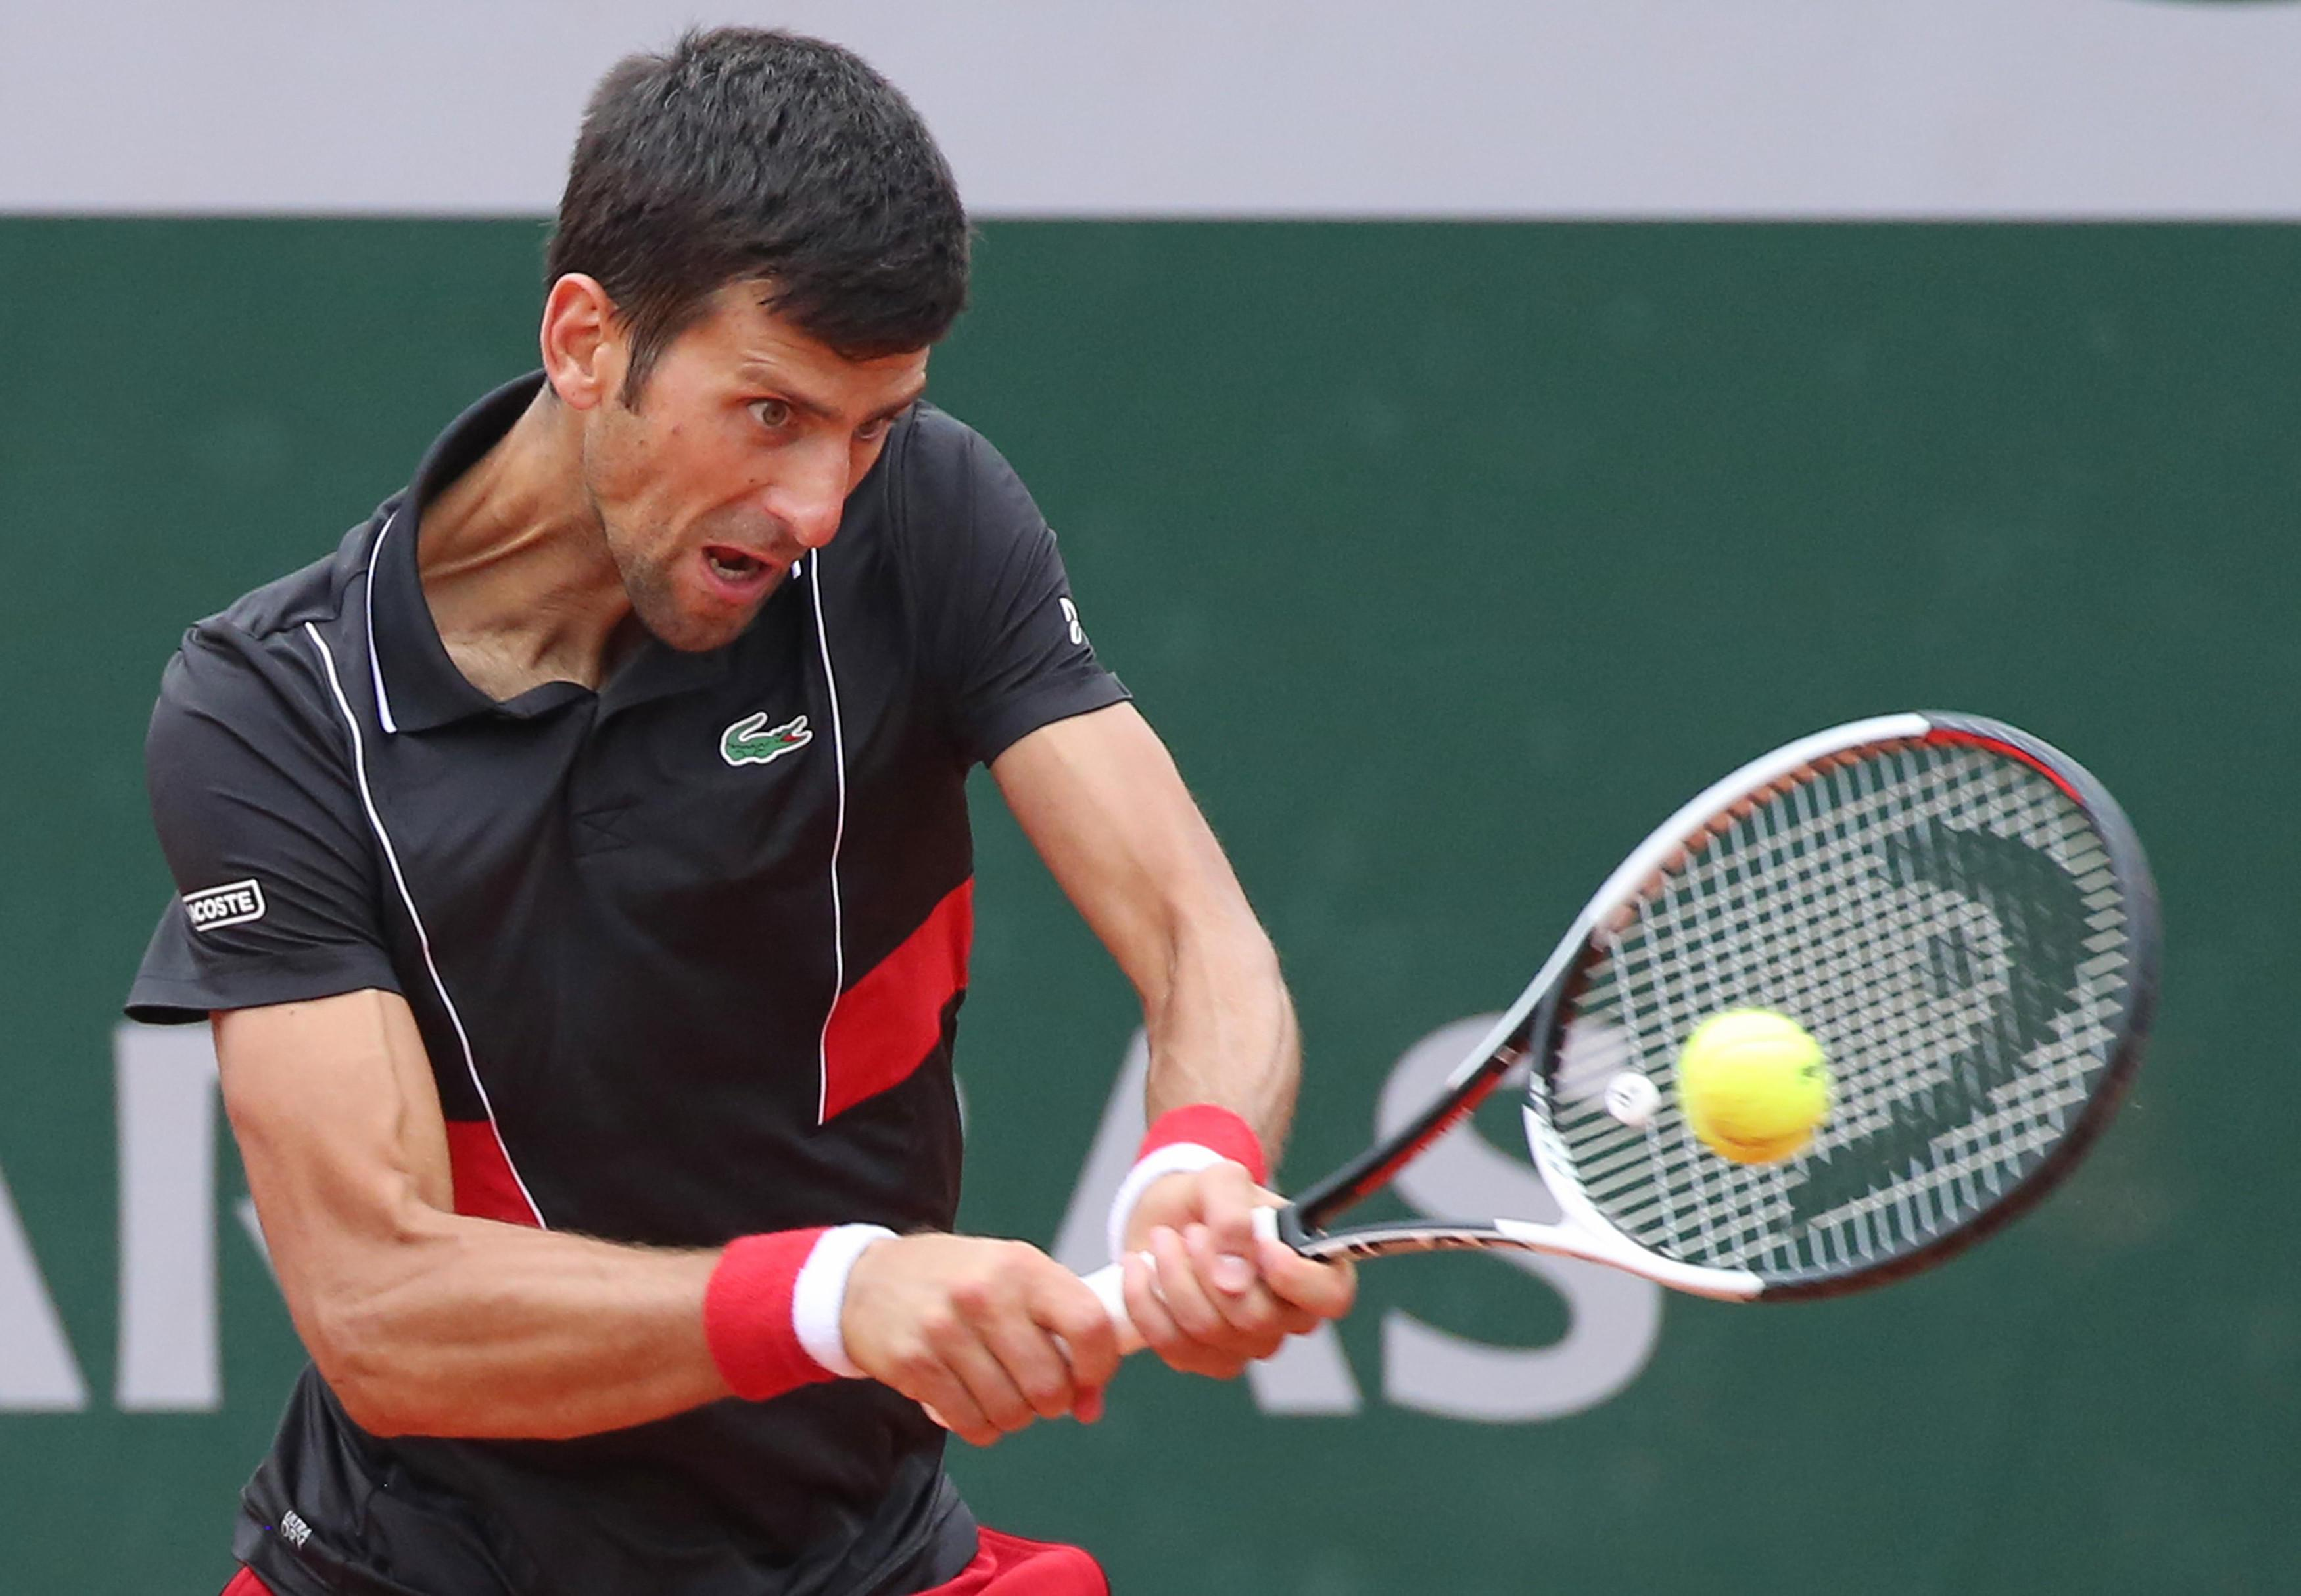 The Serb will look to find form at Queen's before his Wimbledon bid